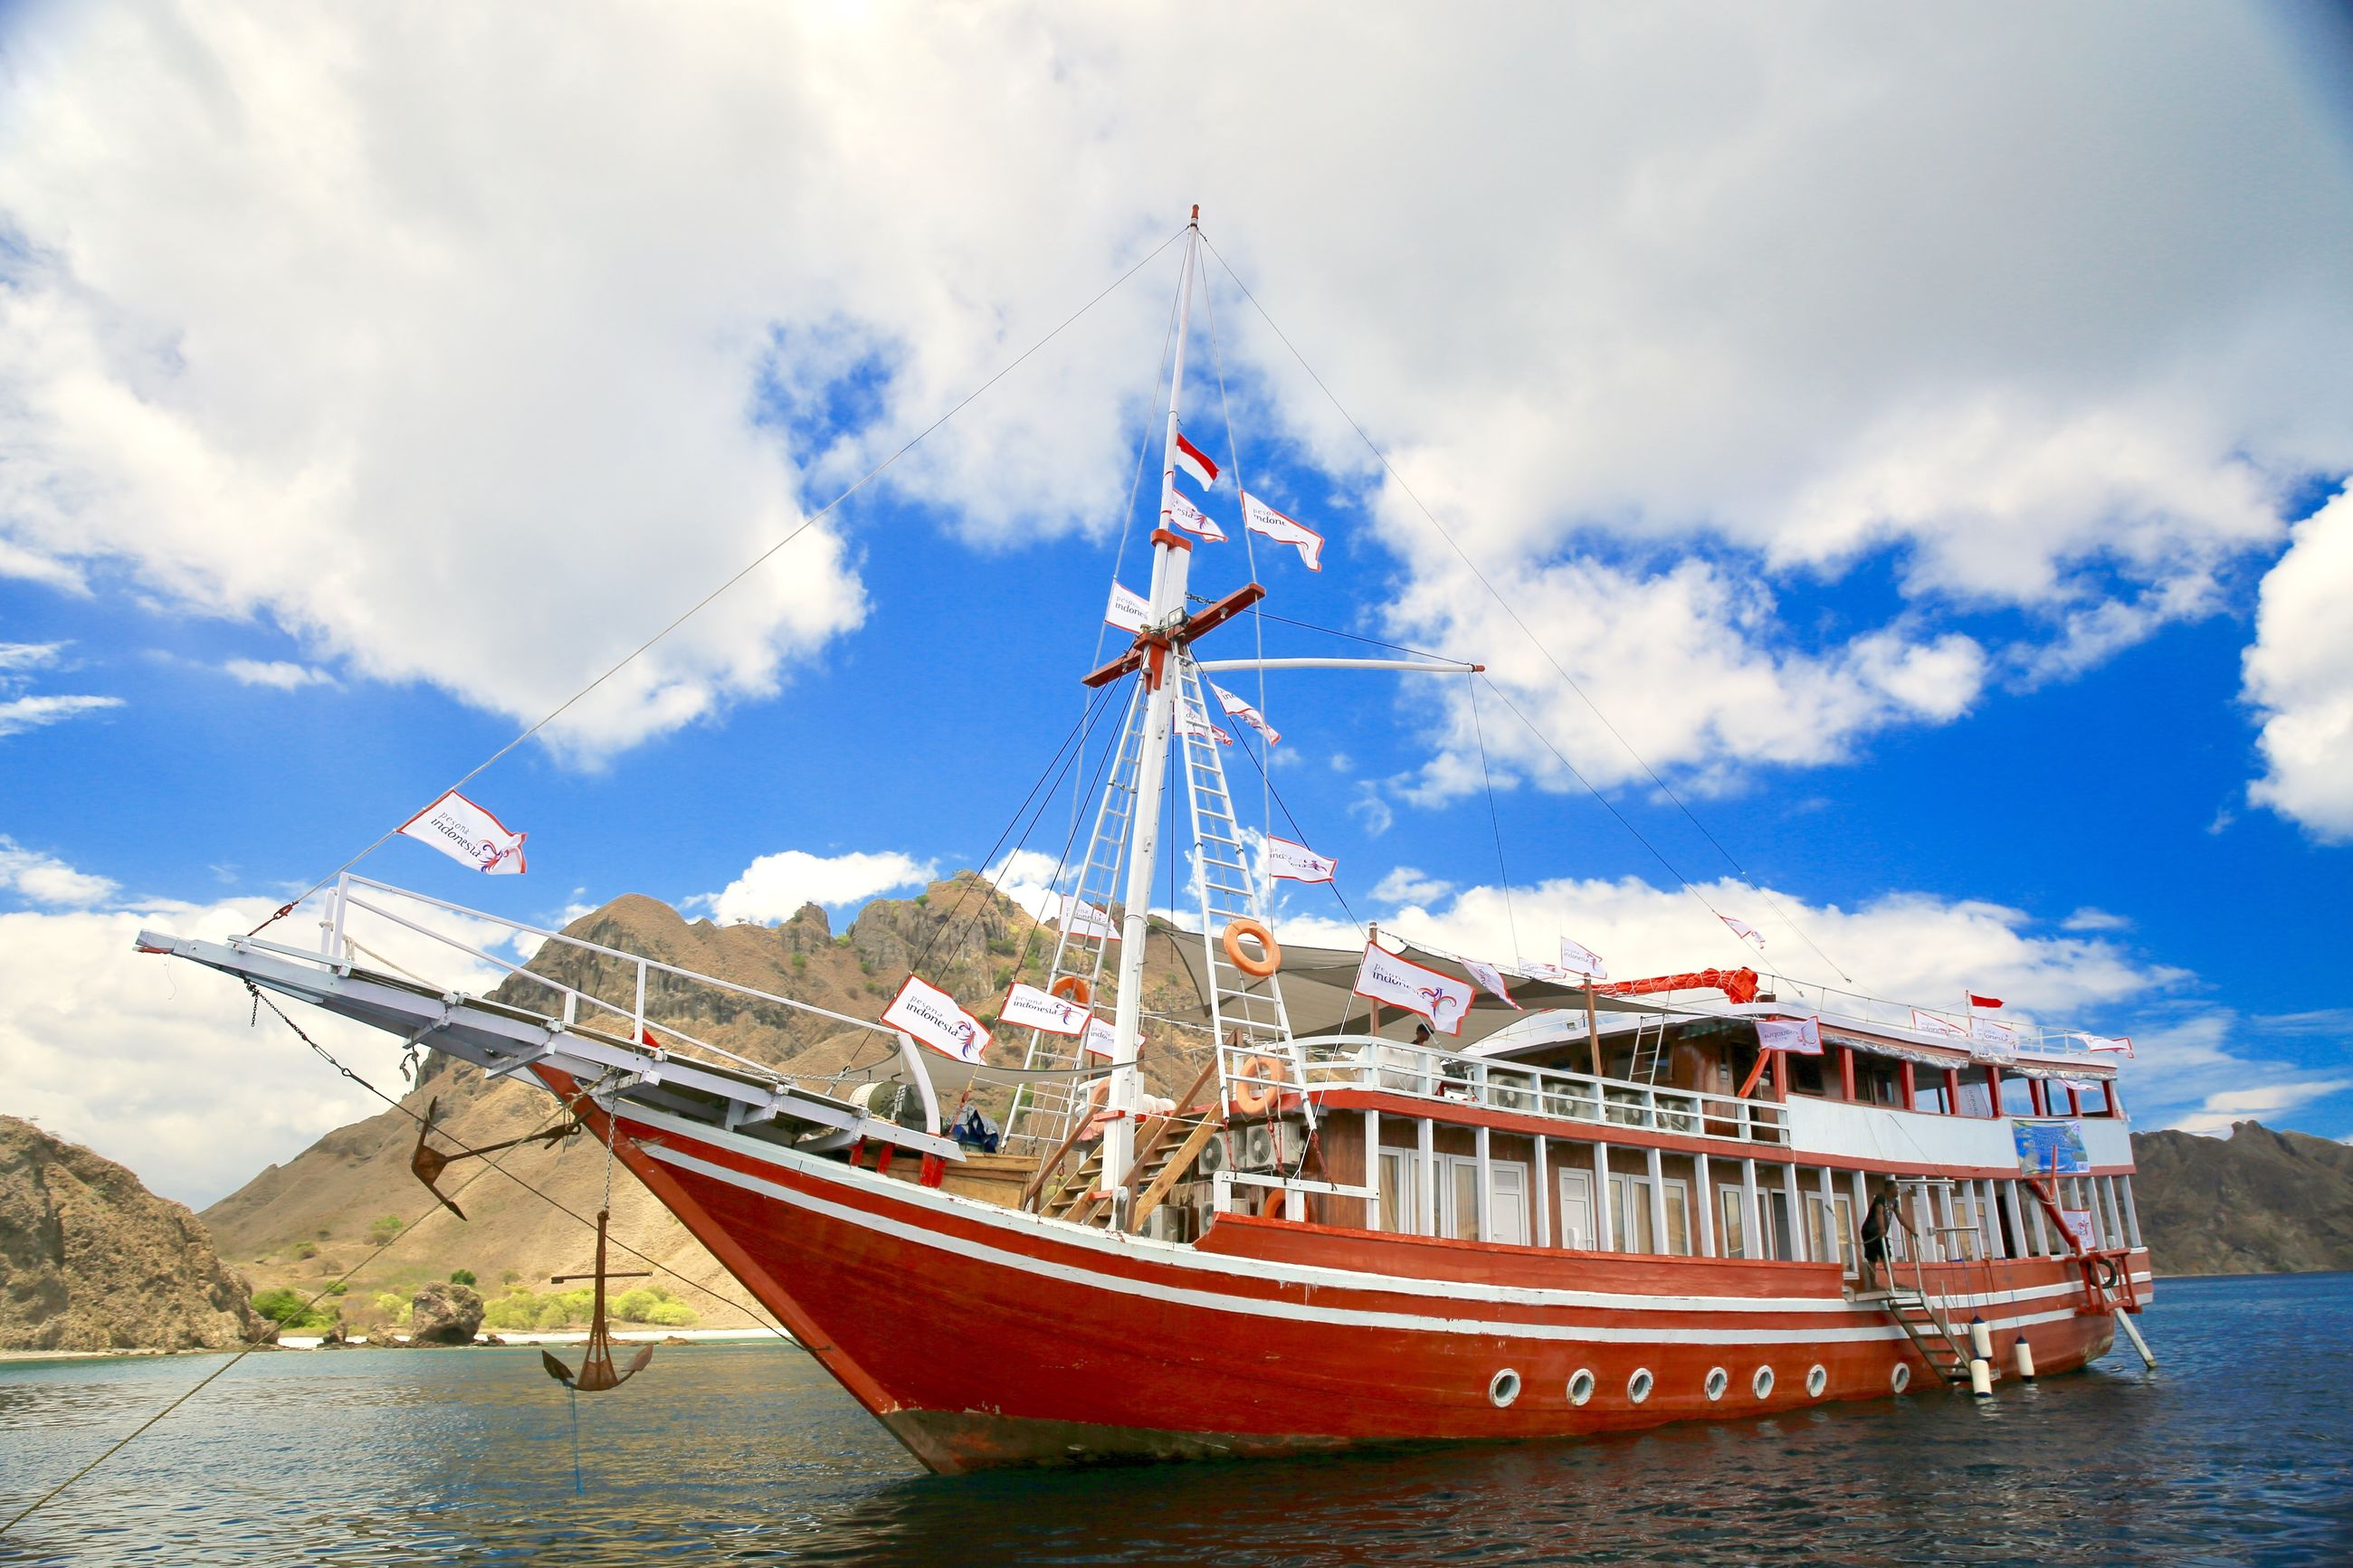 nautical vessel, transportation, cloud - sky, mode of transport, sky, water, boat, day, moored, nature, outdoors, sea, no people, blue, mast, beauty in nature, sailing ship